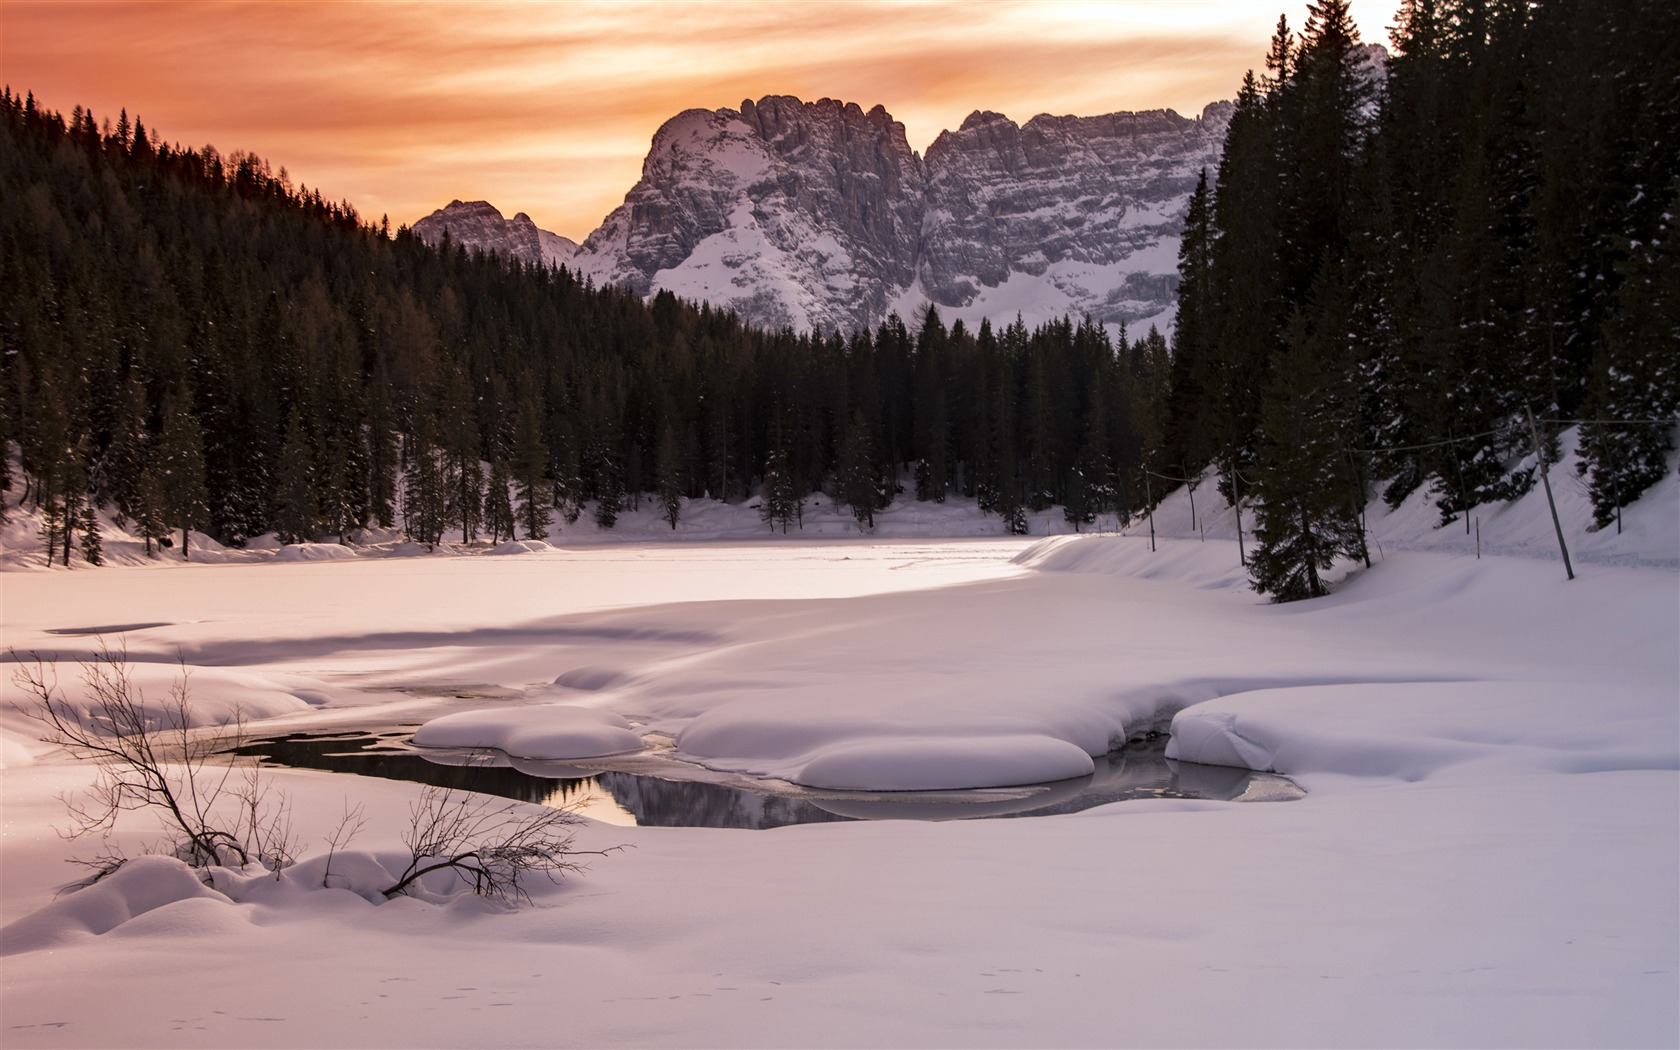 Winter jungle Alpine ice snow sunset - 1680x1050 wallpaper download